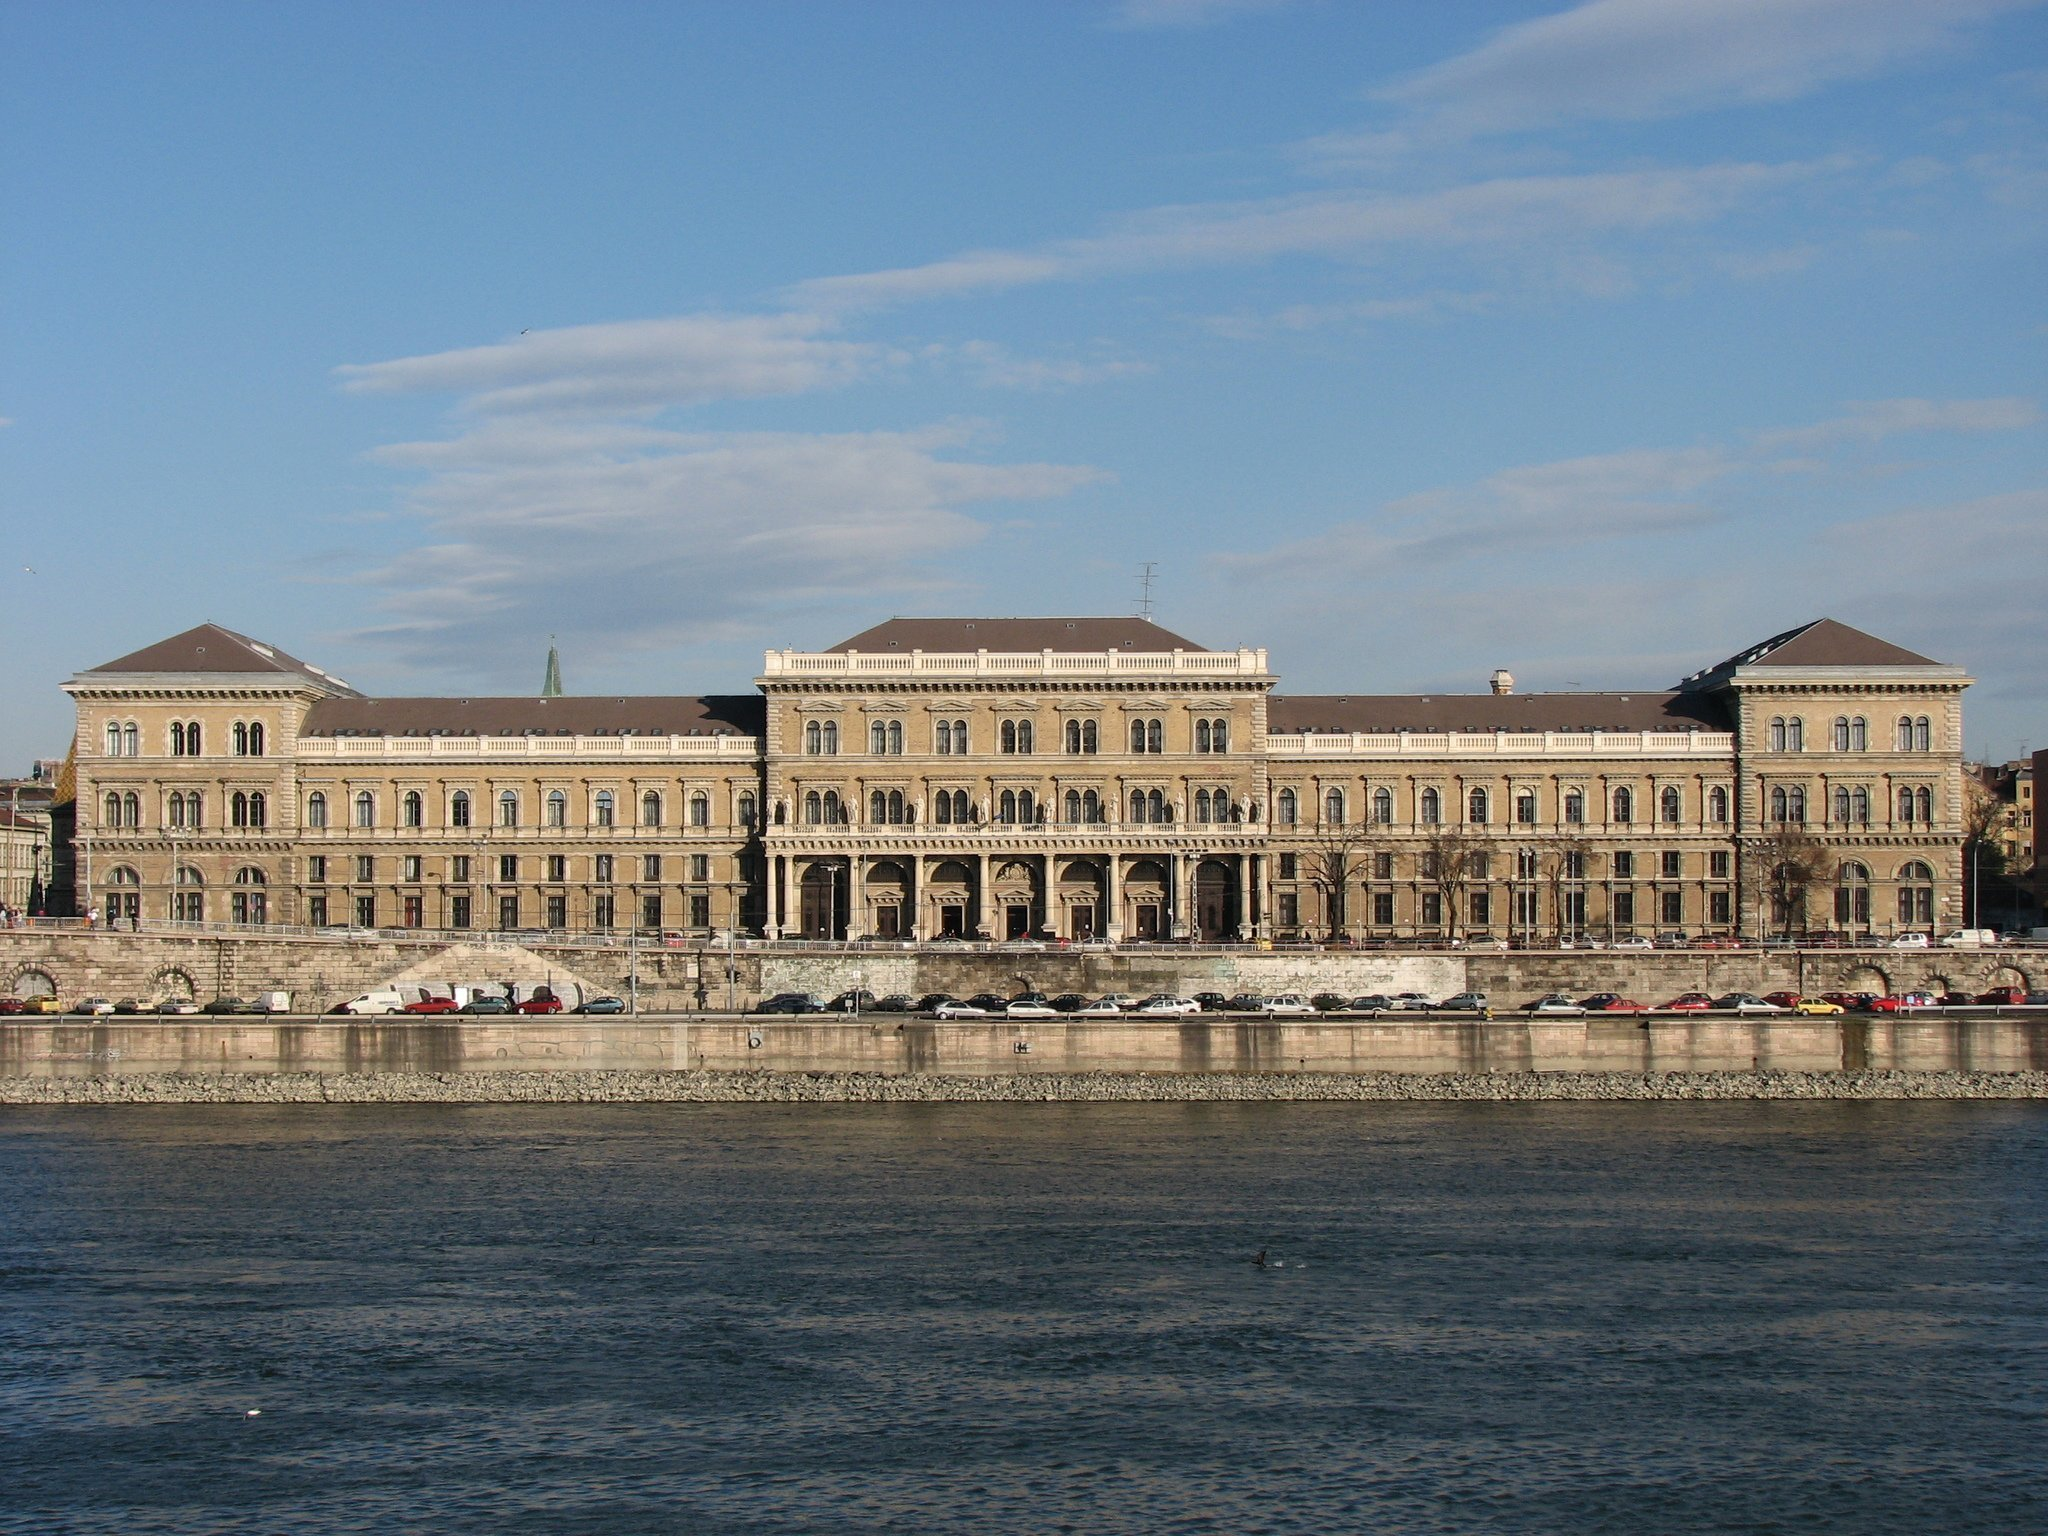 The best Hungarian universities, part 3 – Corvinus University of Budapest